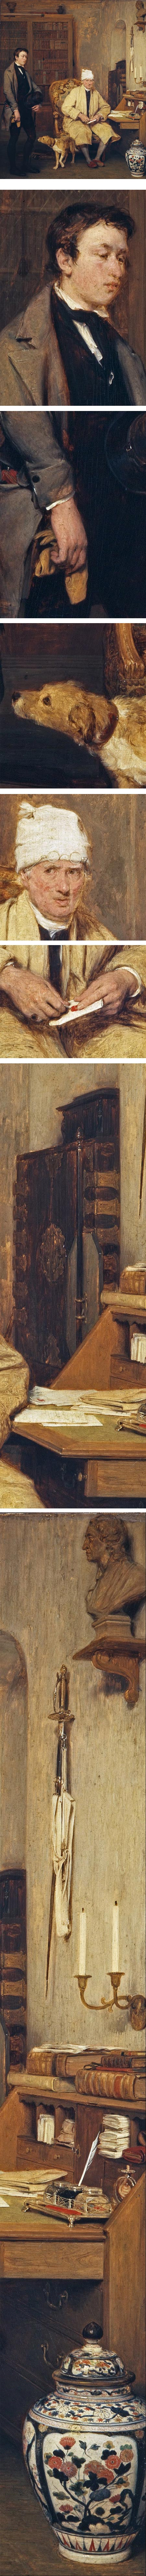 The Letter of Introduction, David Wilkie